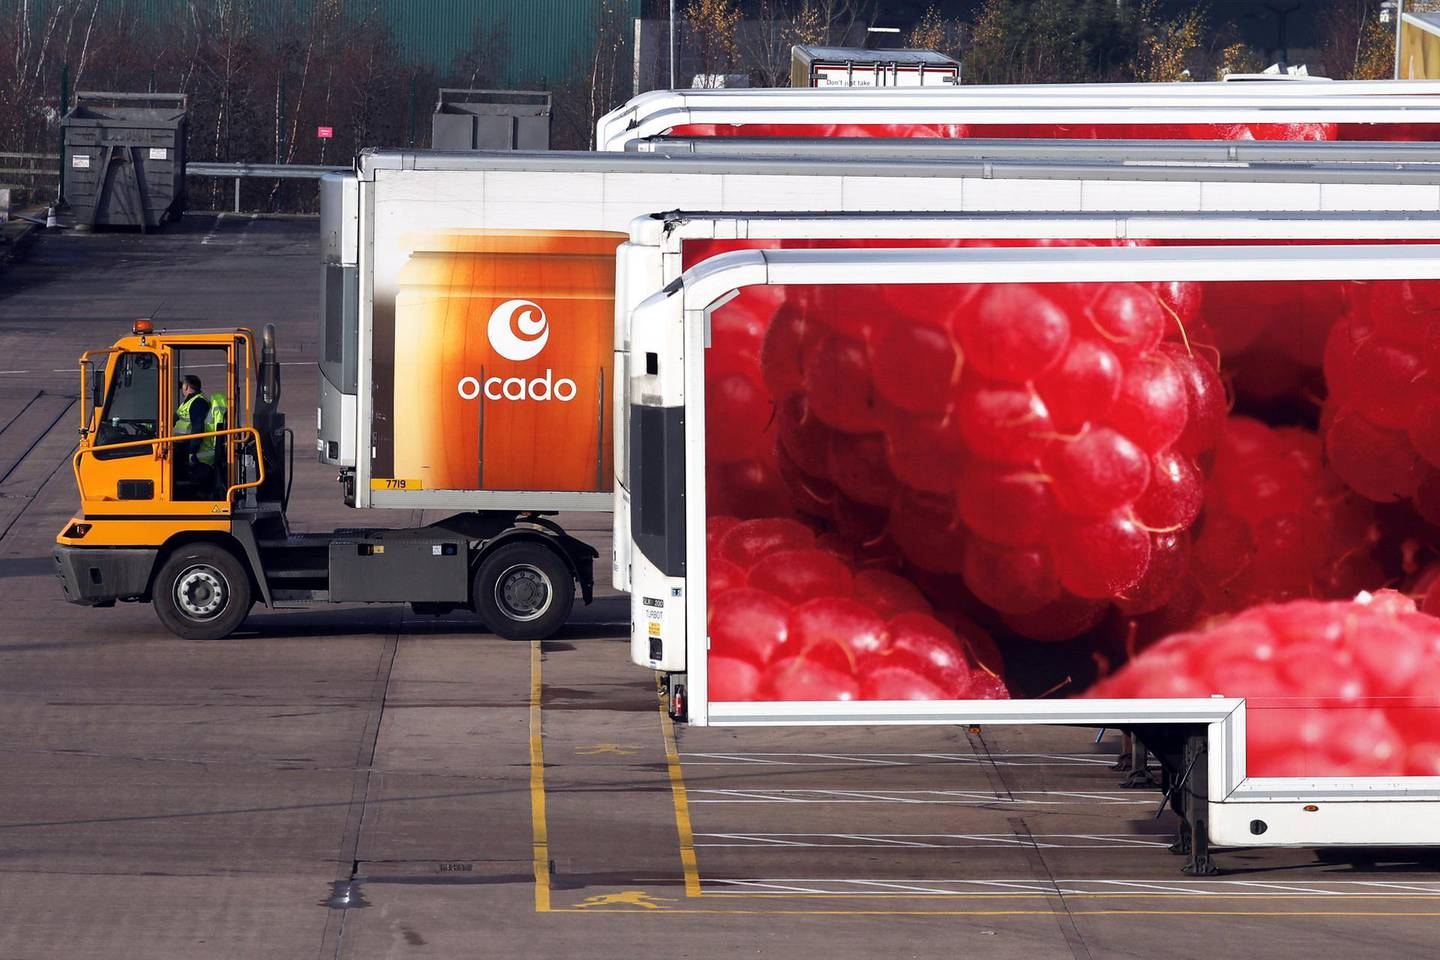 A truck pushes an articulated lorry trailer into position at the Ocado Group Plc distribution centre in Dordon, U.K., on Friday, Dec. 16, 2016. Ocado provides home delivery of a wide range of products including food and drink, toiletries and baby, household, pet care, and holiday products.  Photographer: Chris Ratcliffe/Bloomberg